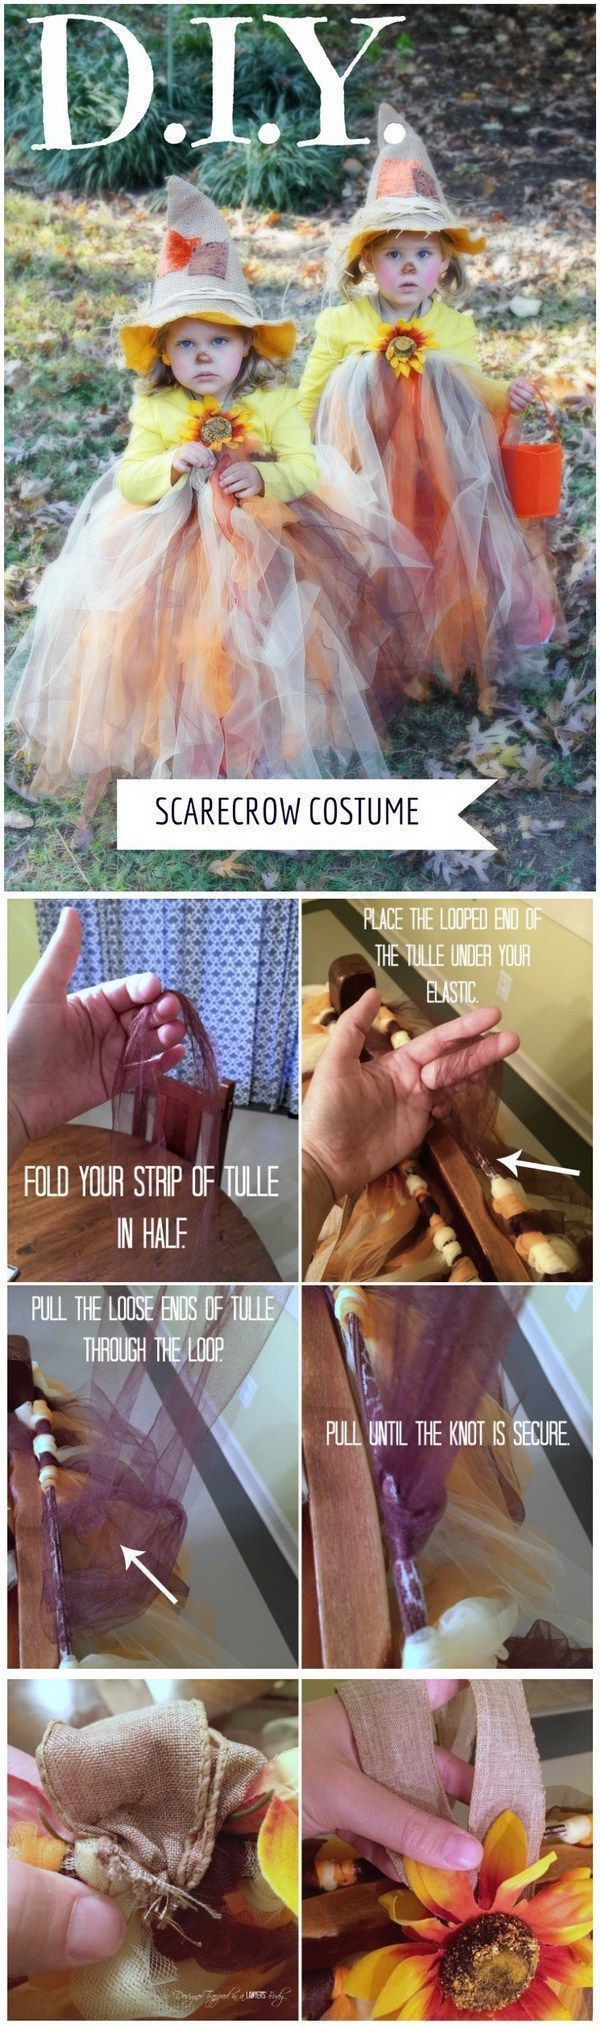 20+ Creative DIY Halloween Costumes for Kids with Lots of Tutorials   - Share Your Craft - #costumes #Craft #Creative #DIY #Halloween #Kids #lots #share #Tutorials #scarecrowcostumediy 20+ Creative DIY Halloween Costumes for Kids with Lots of Tutorials   - Share Your Craft - #costumes #Craft #Creative #DIY #Halloween #Kids #lots #share #Tutorials #scarecrowcostumediy 20+ Creative DIY Halloween Costumes for Kids with Lots of Tutorials   - Share Your Craft - #costumes #Craft #Creative #DIY #Hallow #scarecrowcostumediy